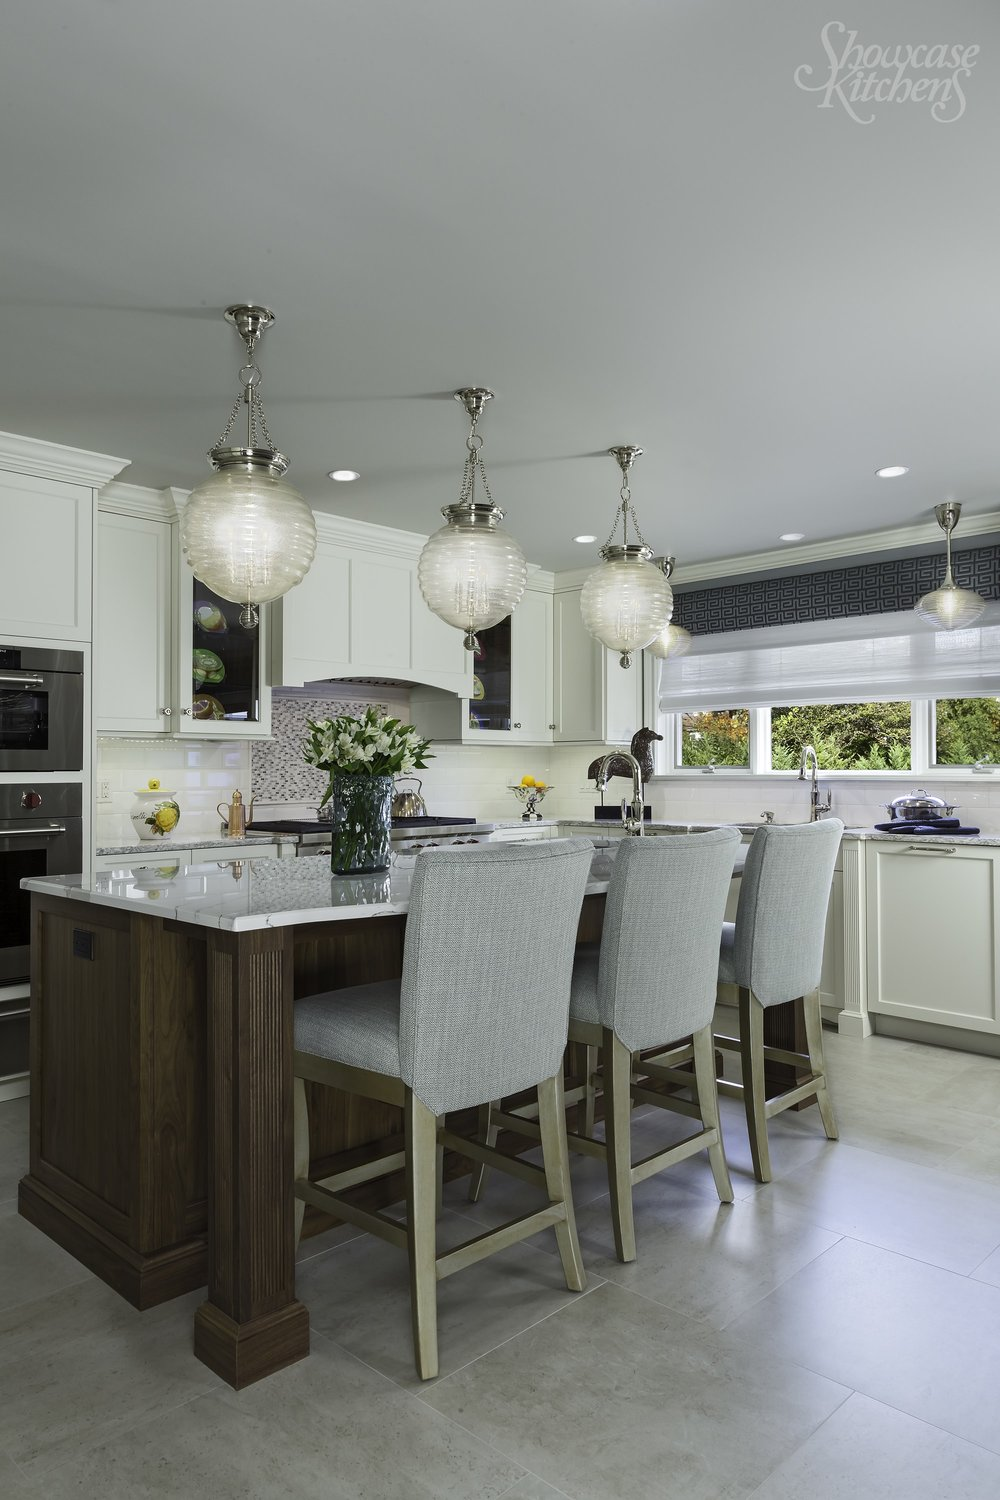 Transitional style kitchen with breakfast table and a stylish chandelier